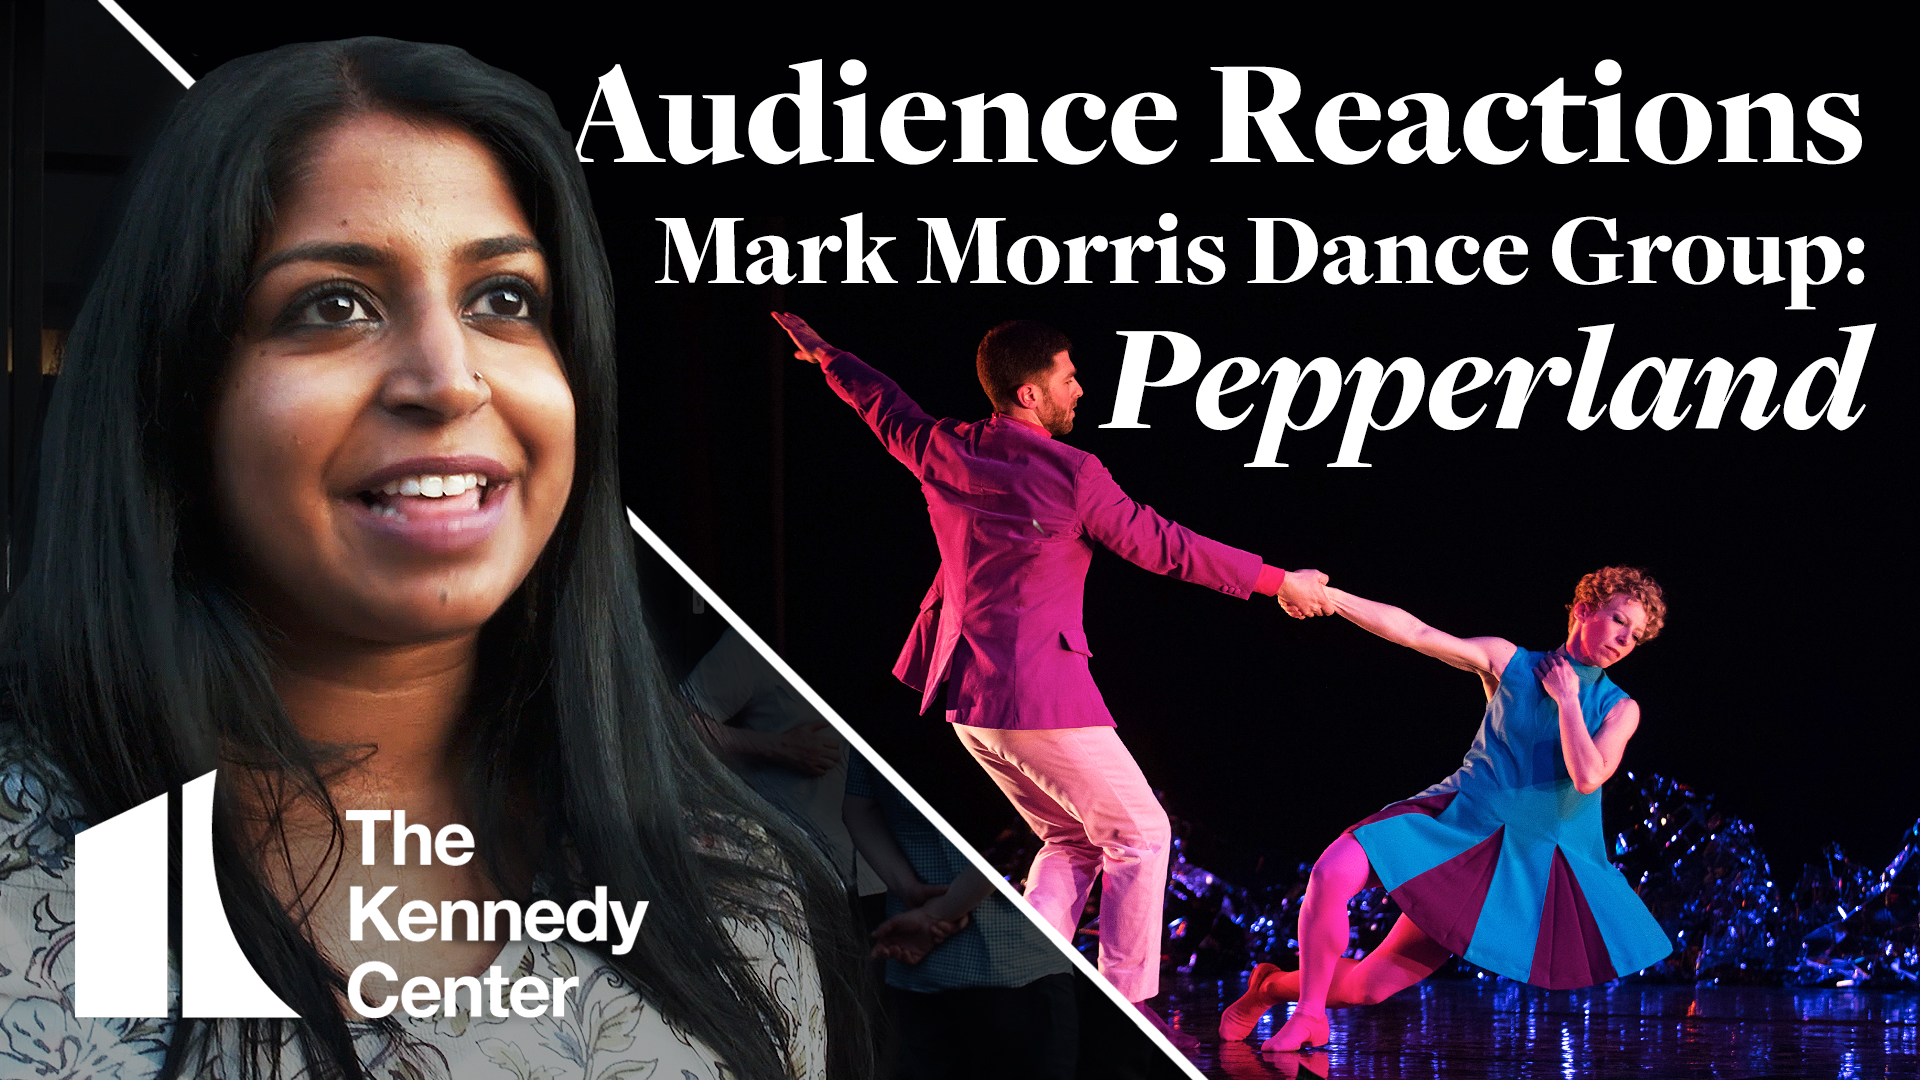 Mark Morris Dance Group: Pepperland - Audience Reactions | The Kennedy Center